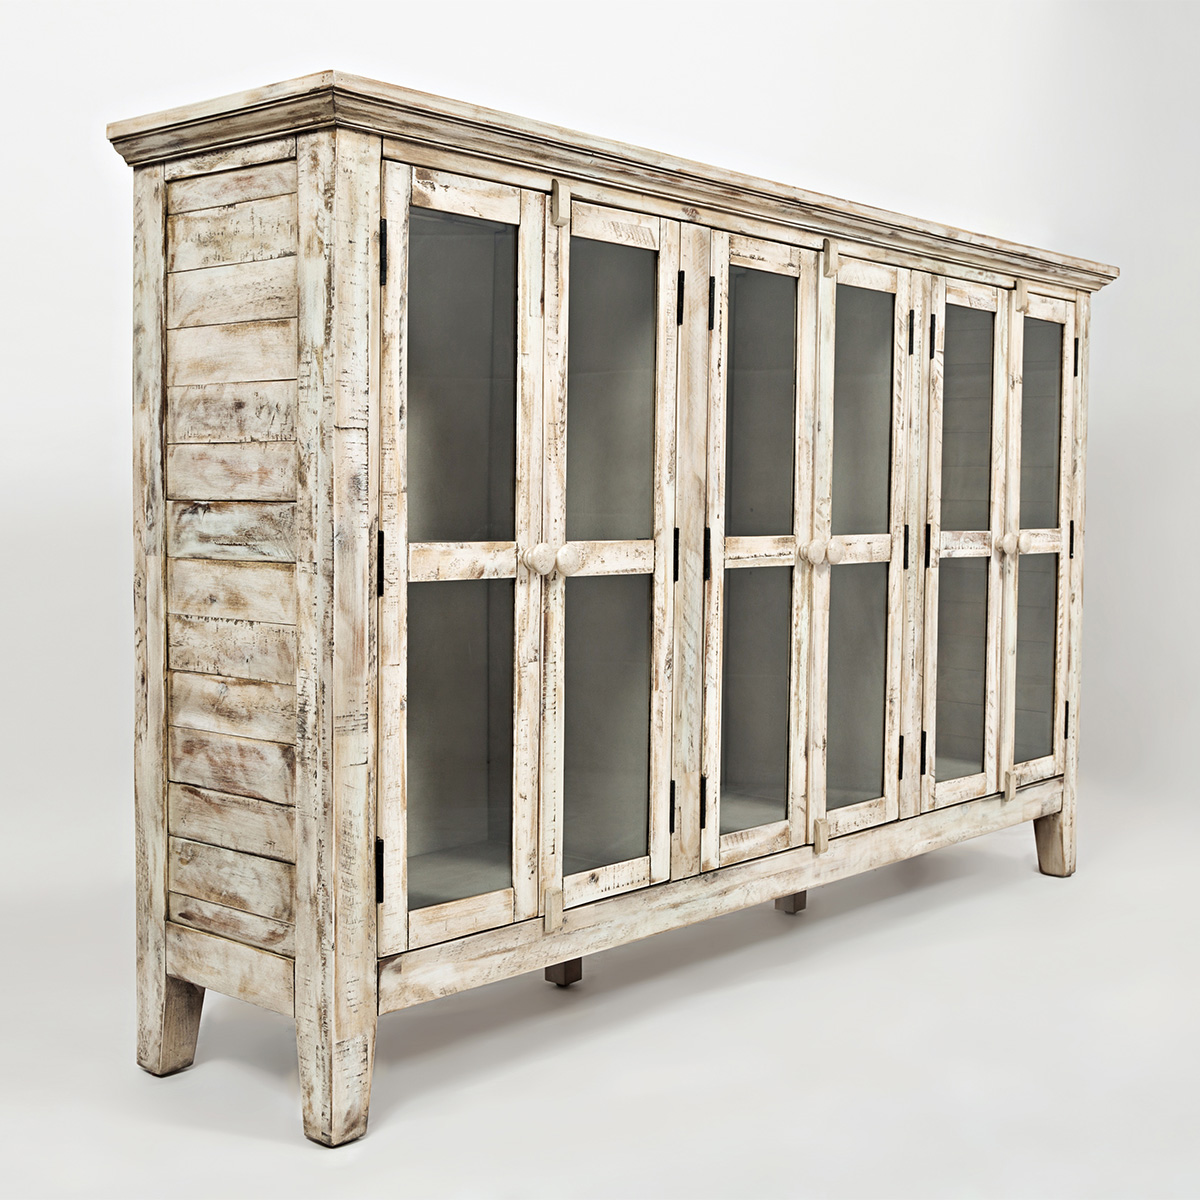 Accent cabinet with glass doors - Rustic Shores Scrimshaw 70 Accent Cabinet In Distressed Cream W Glass Doors